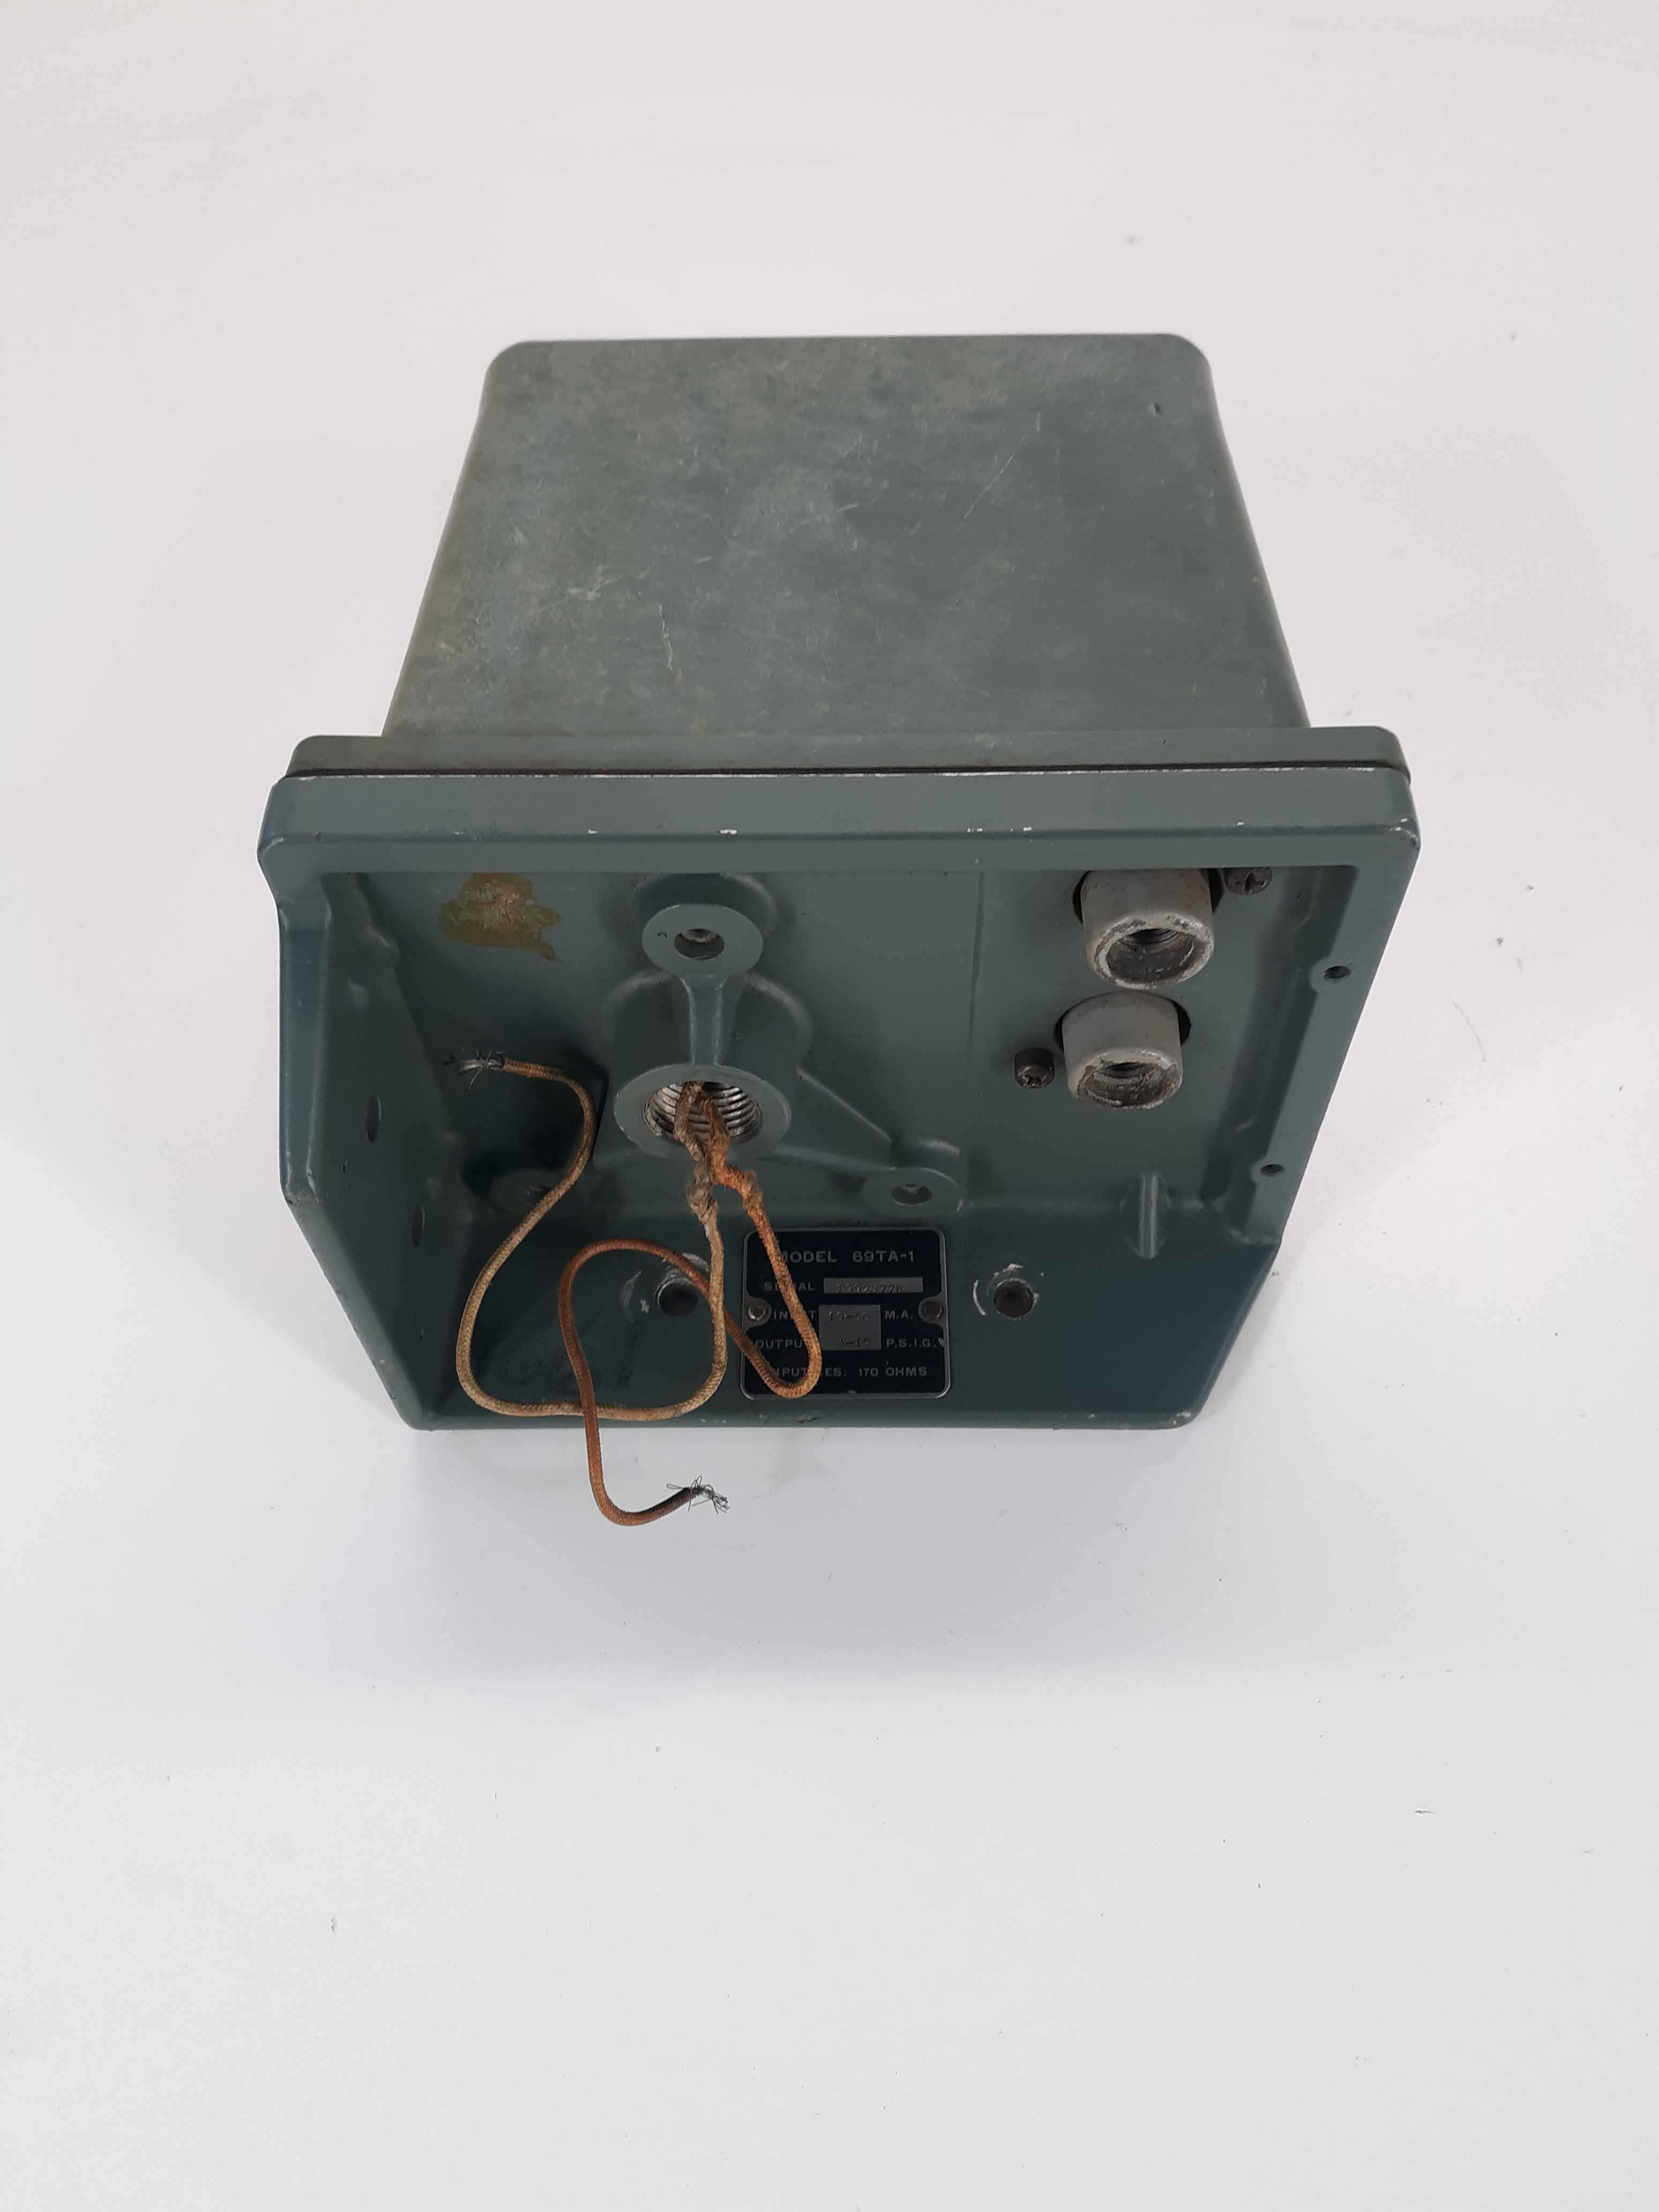 Foxboro 69TA-1 Current To Air Transducer 10-50mpa 3-15psi